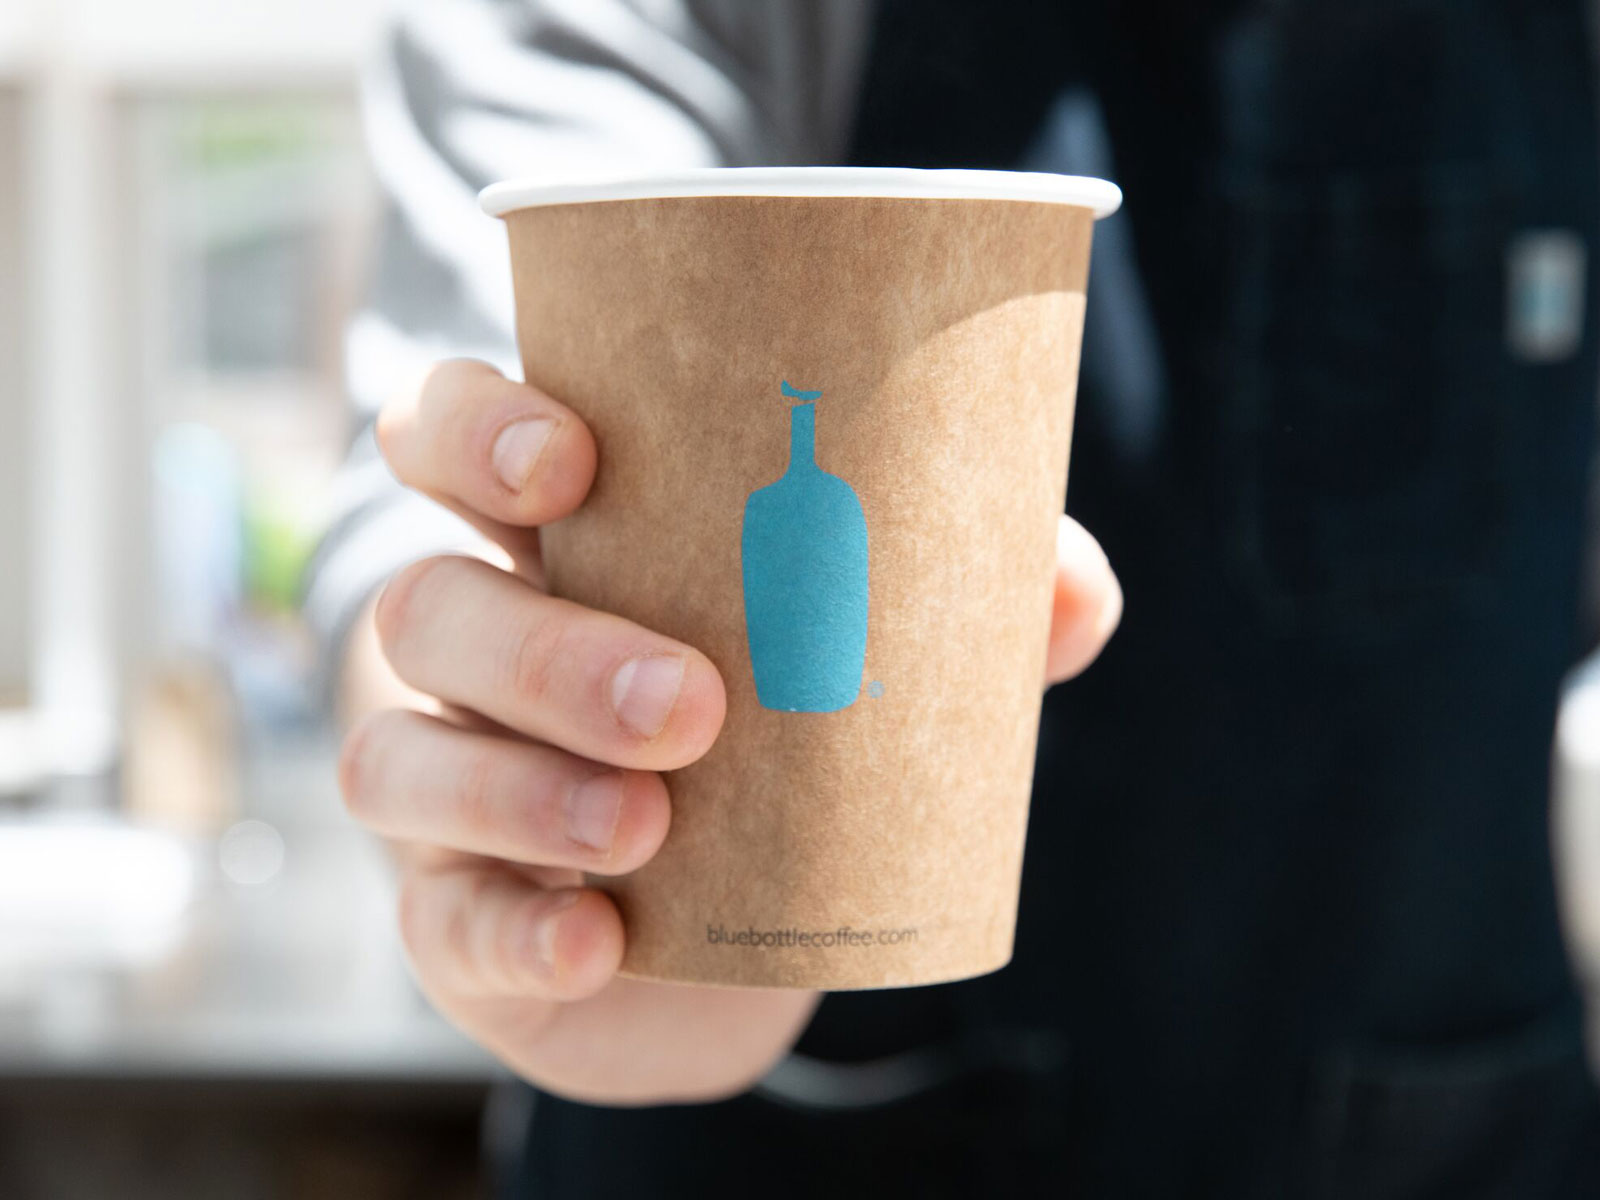 Blue Bottle Wants to Brew You a Better, Faster Cup of Coffee